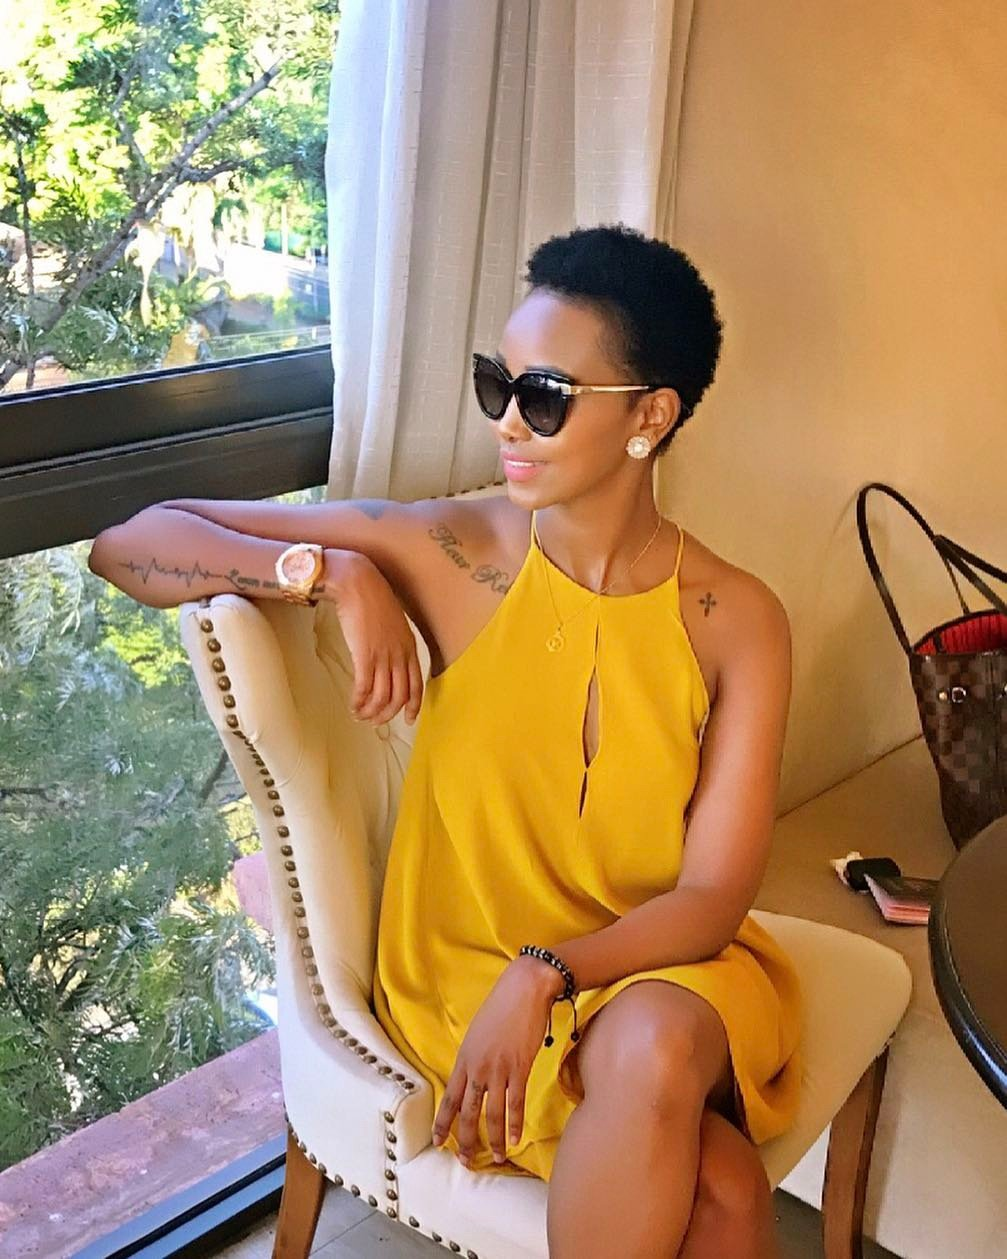 Huddah Monroe exposes a high government official who stole her project idea